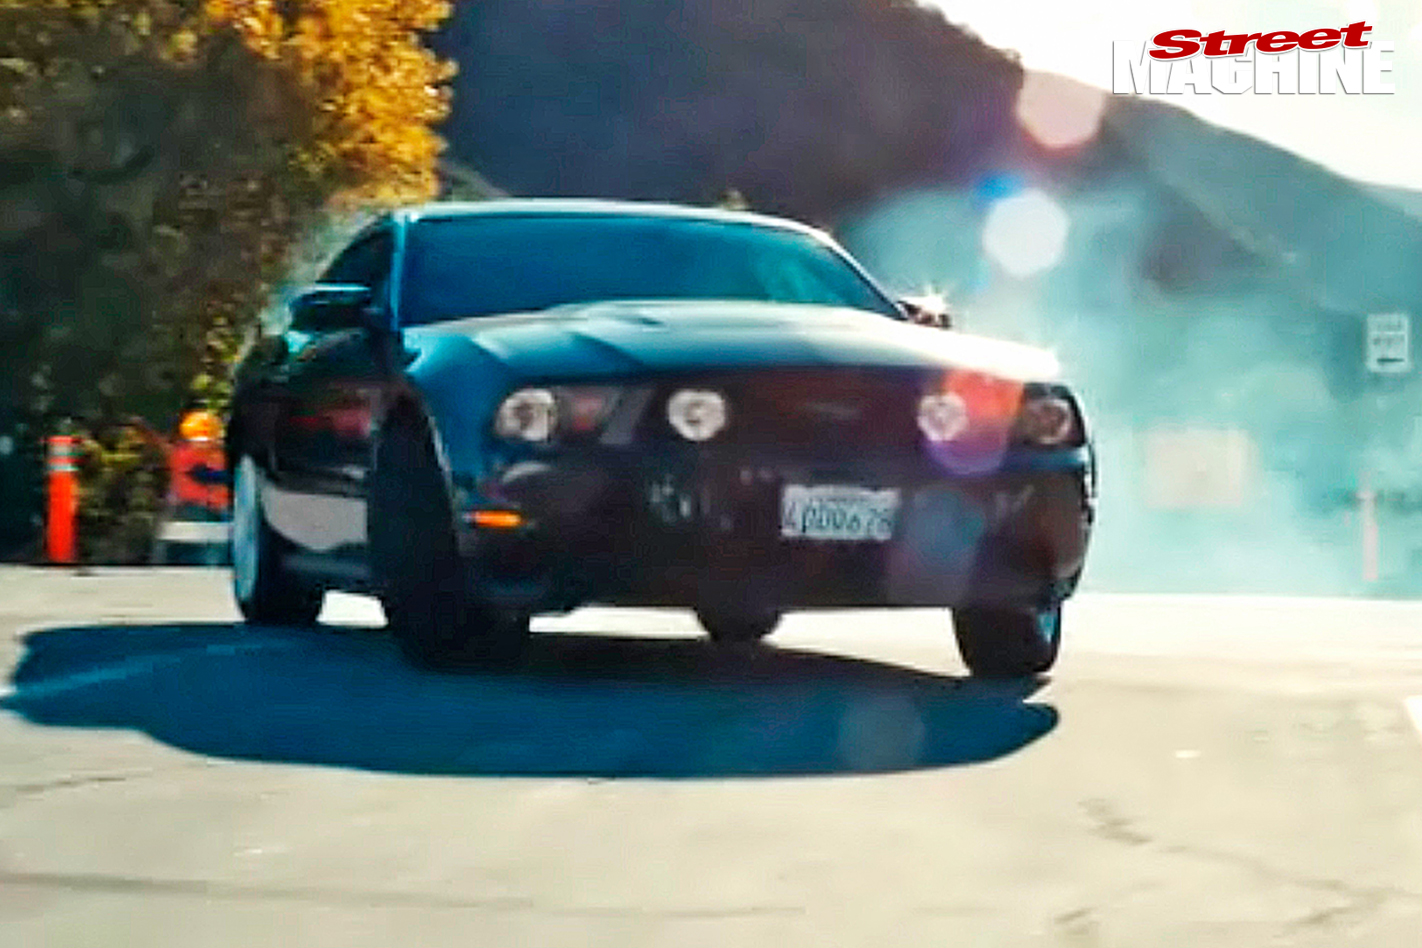 Drive -2011-Ford -Mustang -Ryan -Gosling